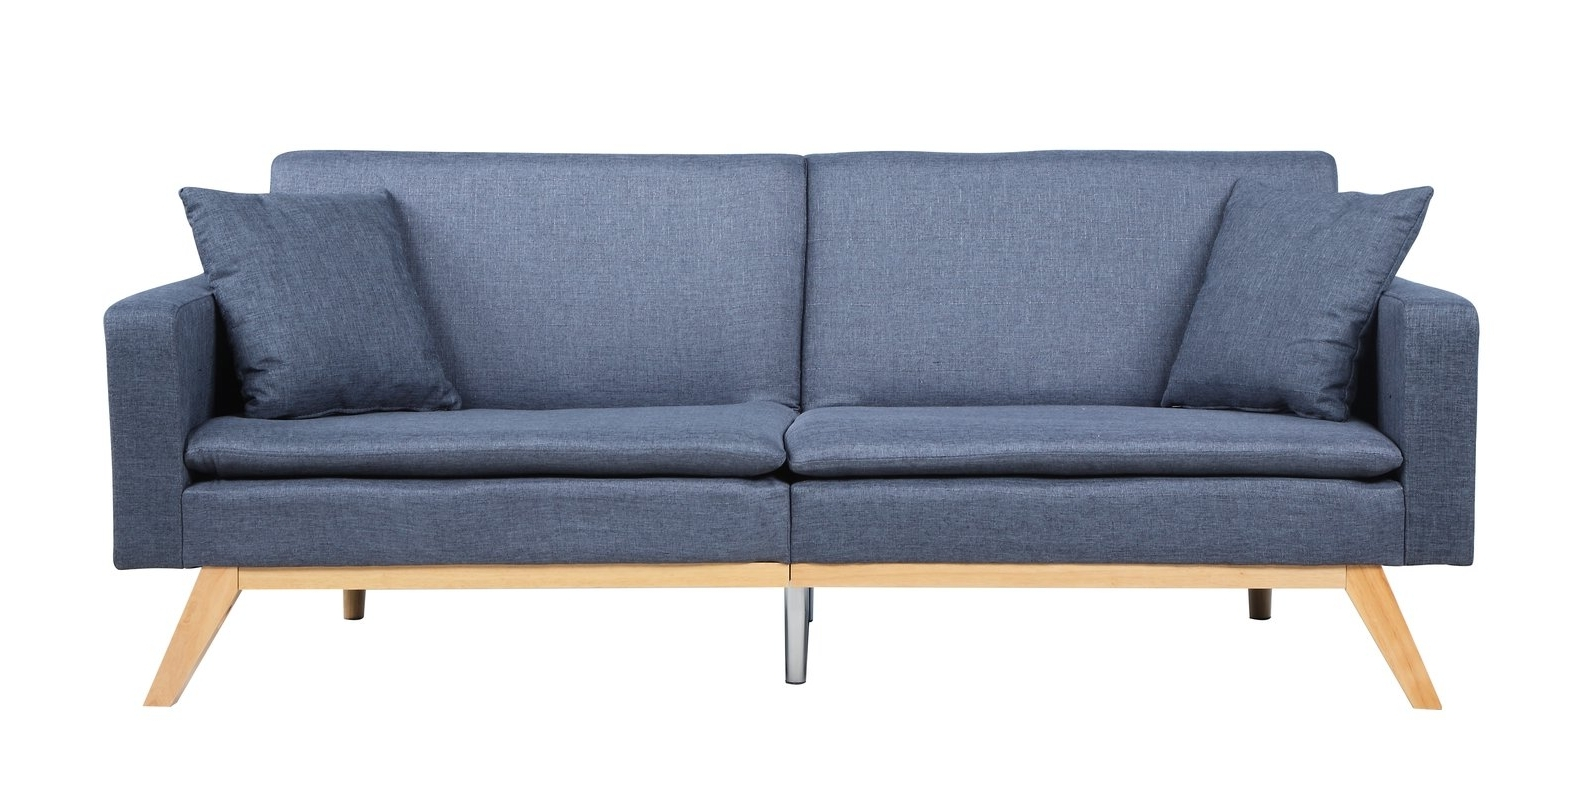 Tufted Linen Sofas Throughout Favorite Madison Home Usa Modern Tufted Linen Splitback Recliner Sofa (View 14 of 20)